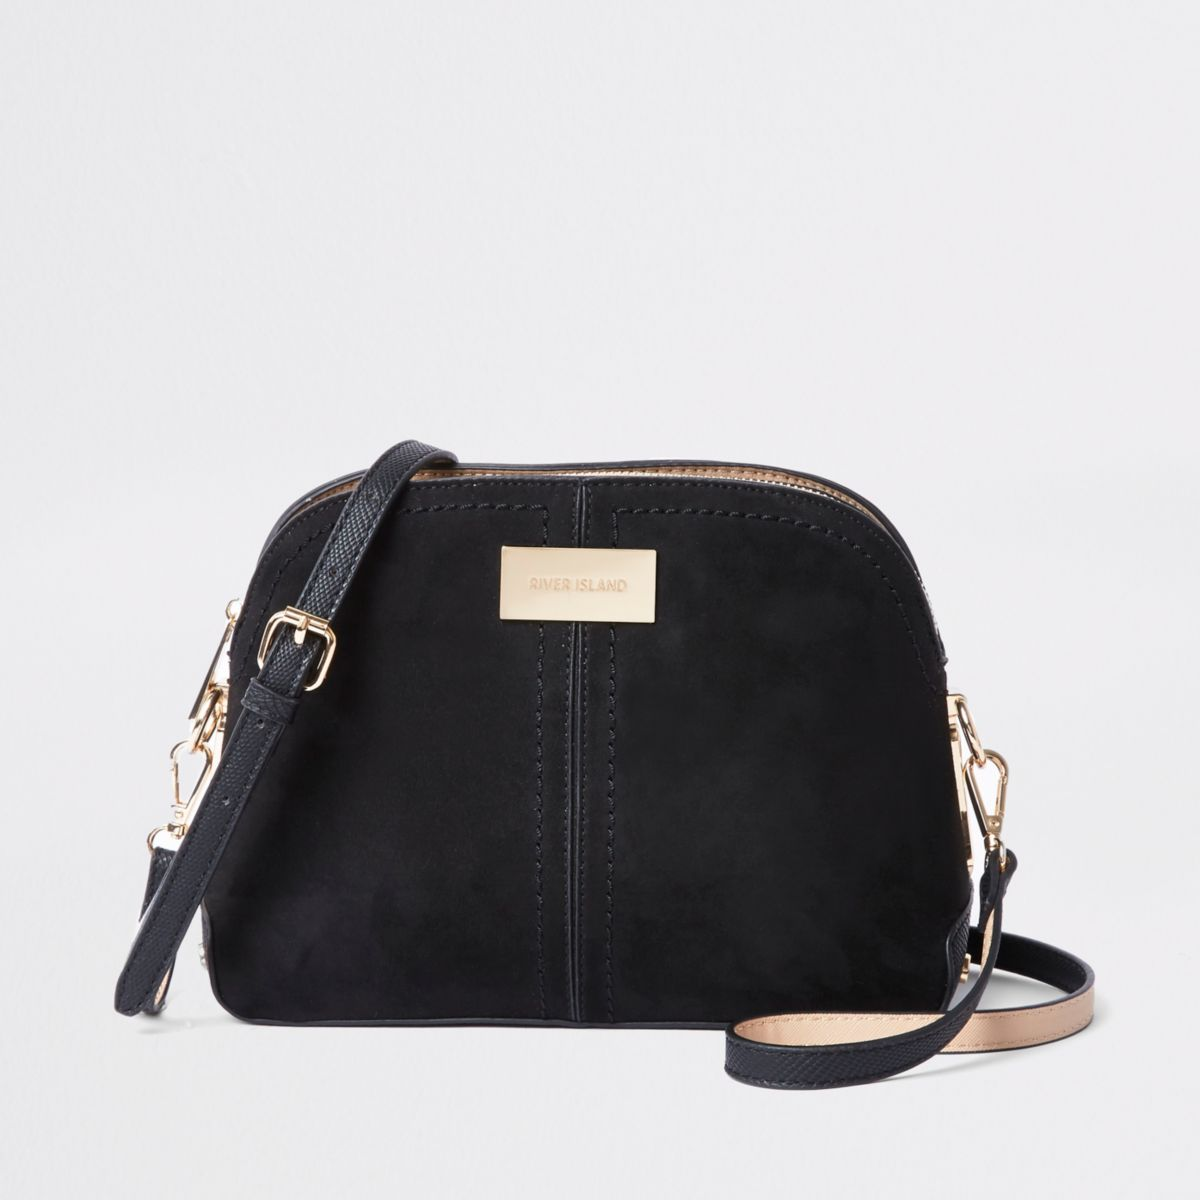 Black Textured Kettle Cross Body by River Island